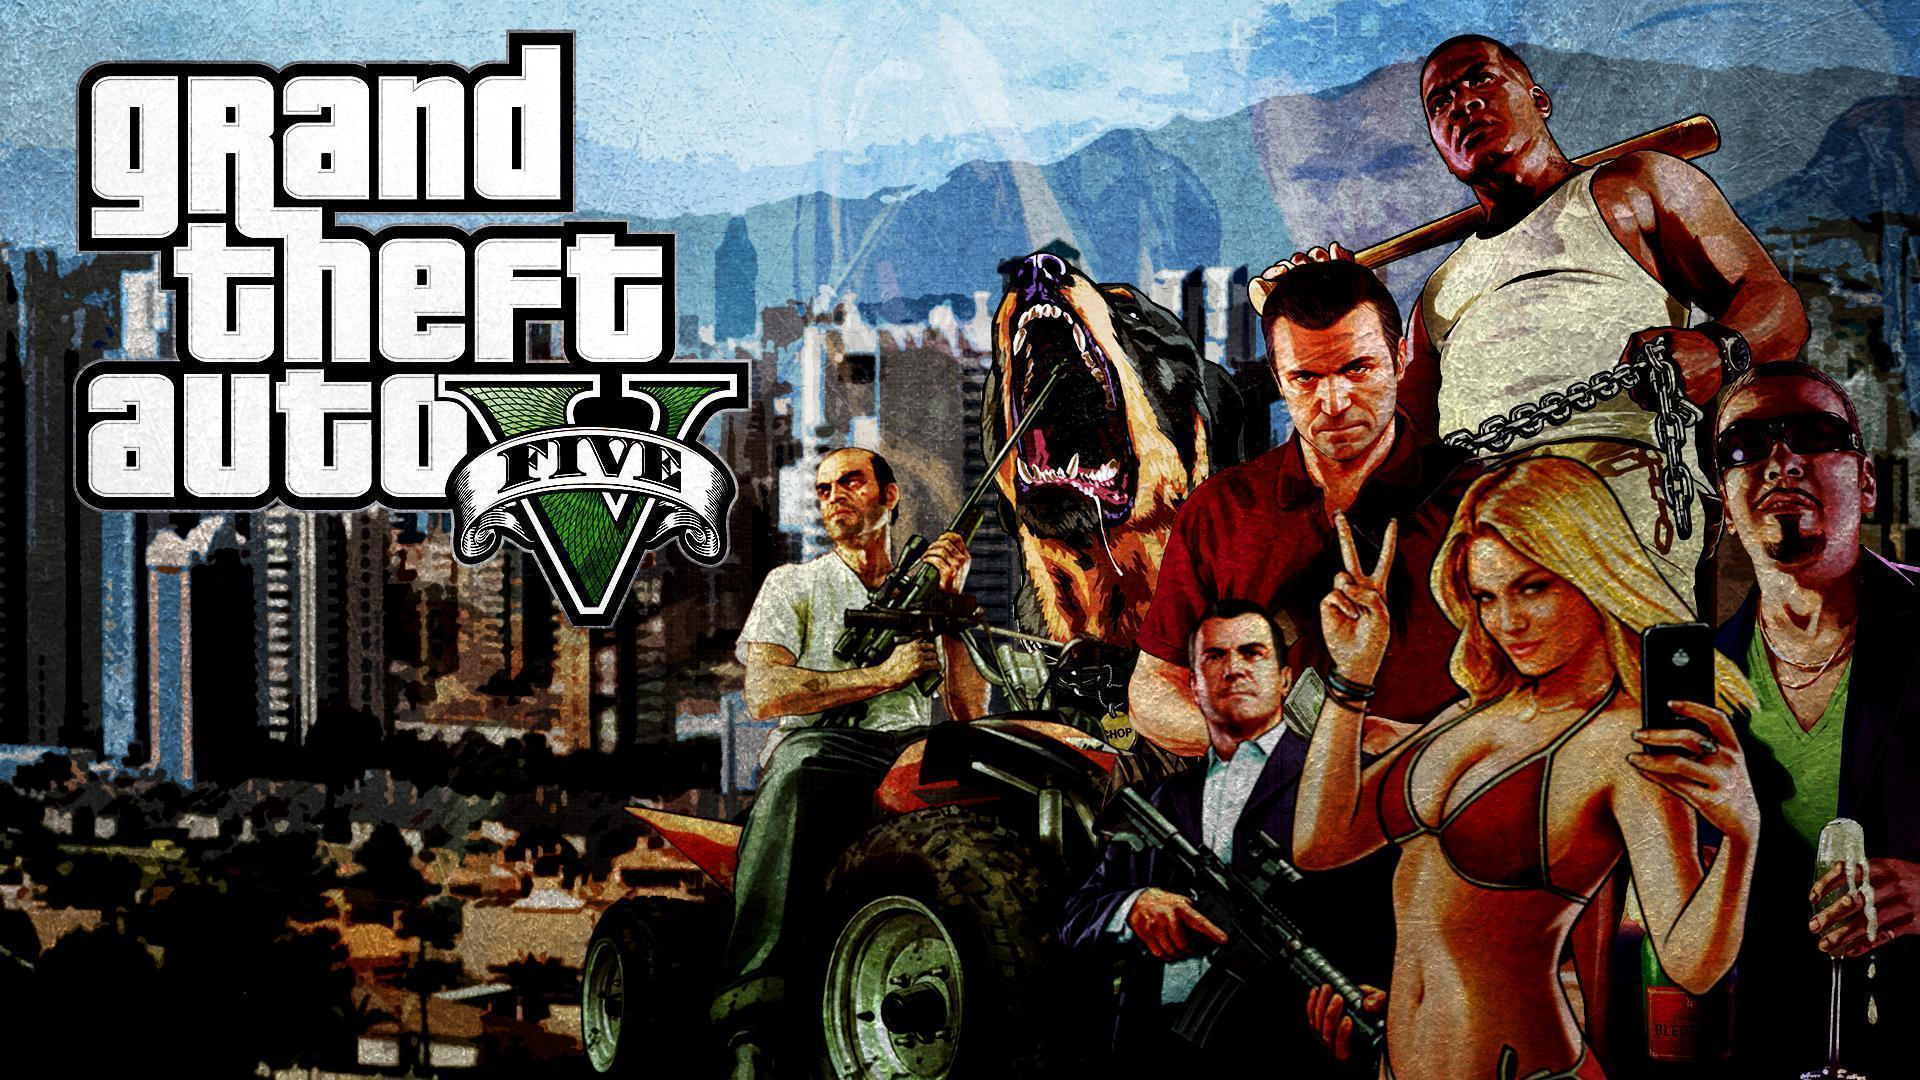 Gta 5 wallpapers wallpaper cave - Gta v wallpaper ...